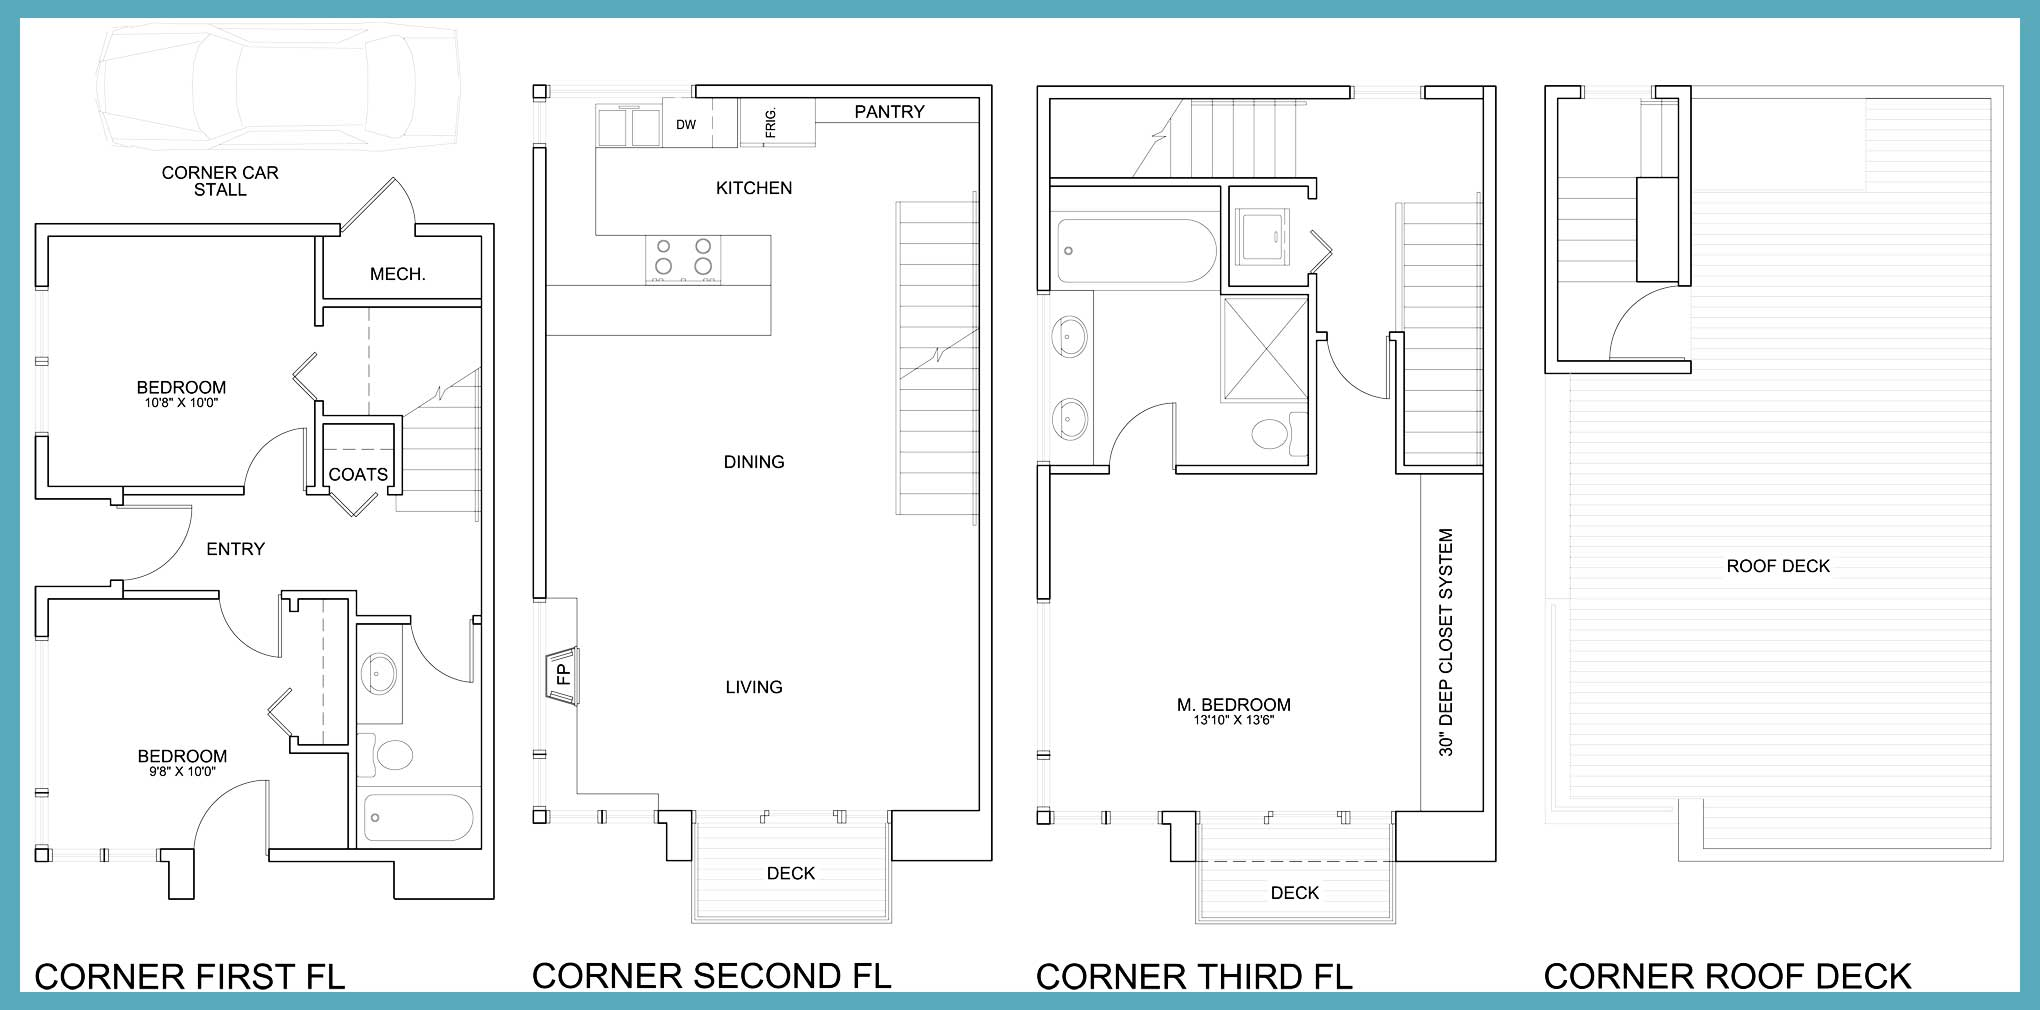 Malden 8 Renderings and Floor Plans